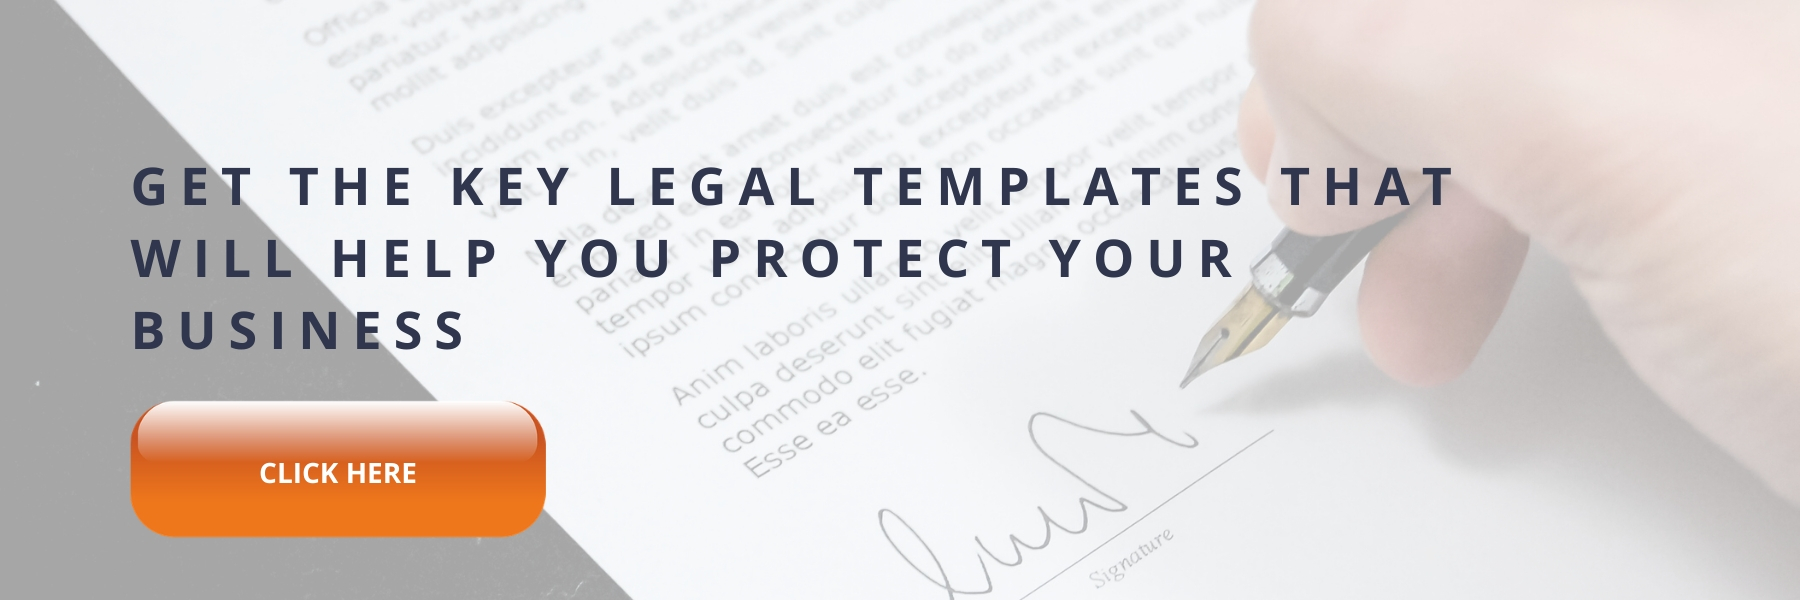 Get the key legal templates that will help you protect your business